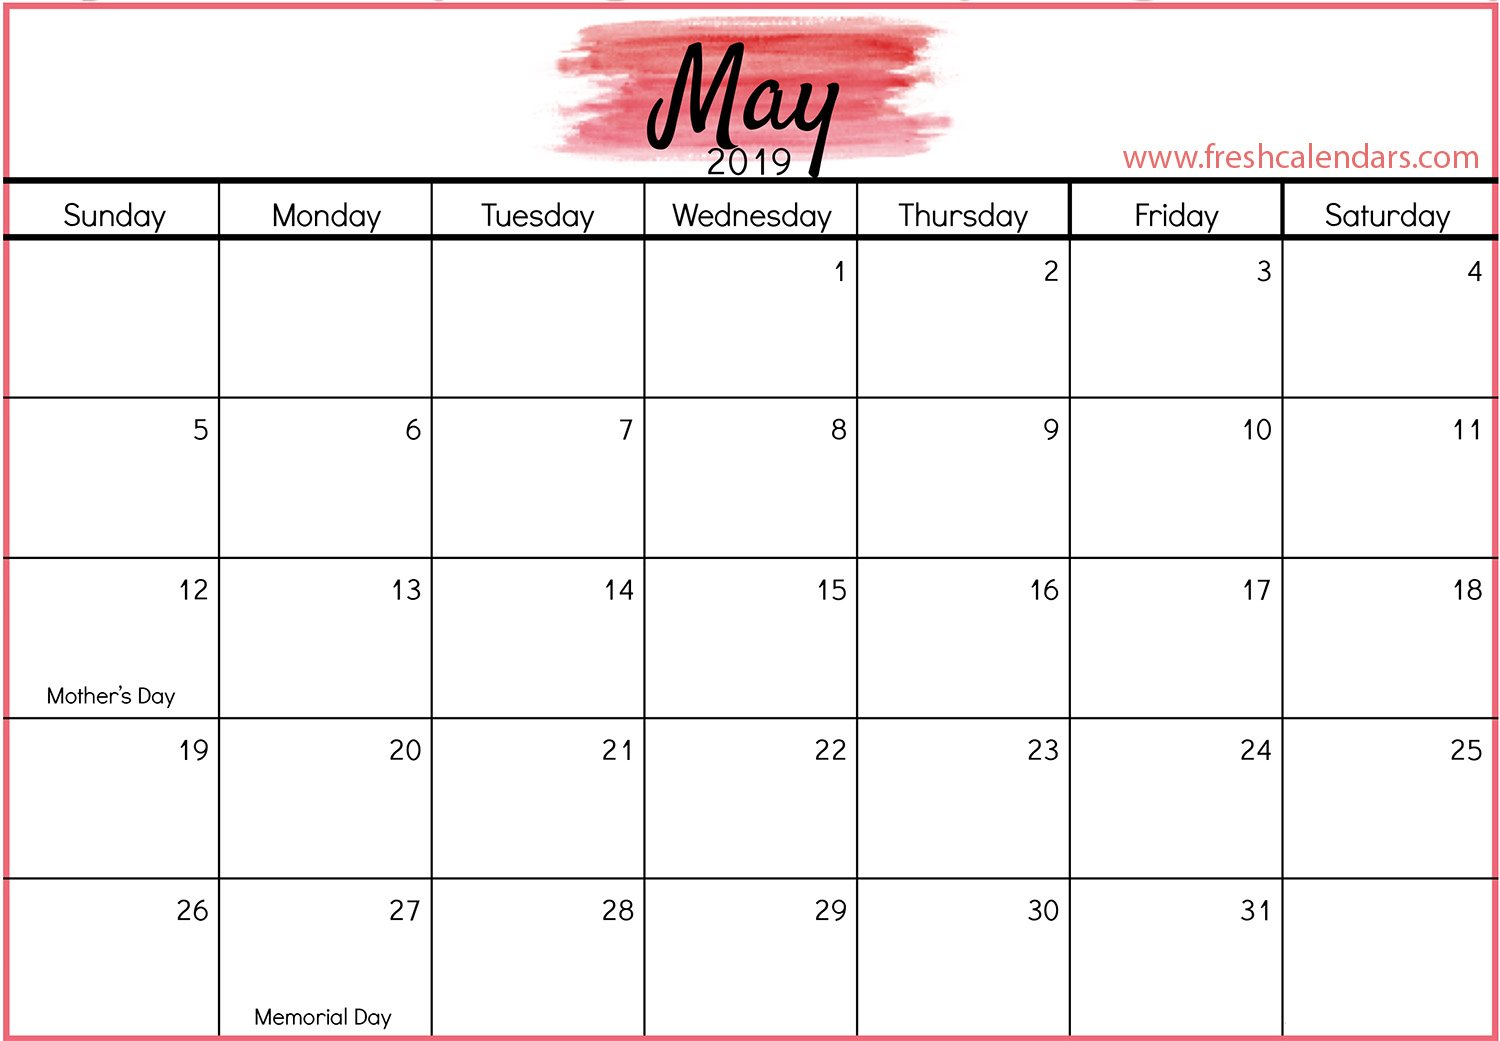 May 2019 Calendar Printable - Fresh Calendars Calendar 2019 Memorial Day